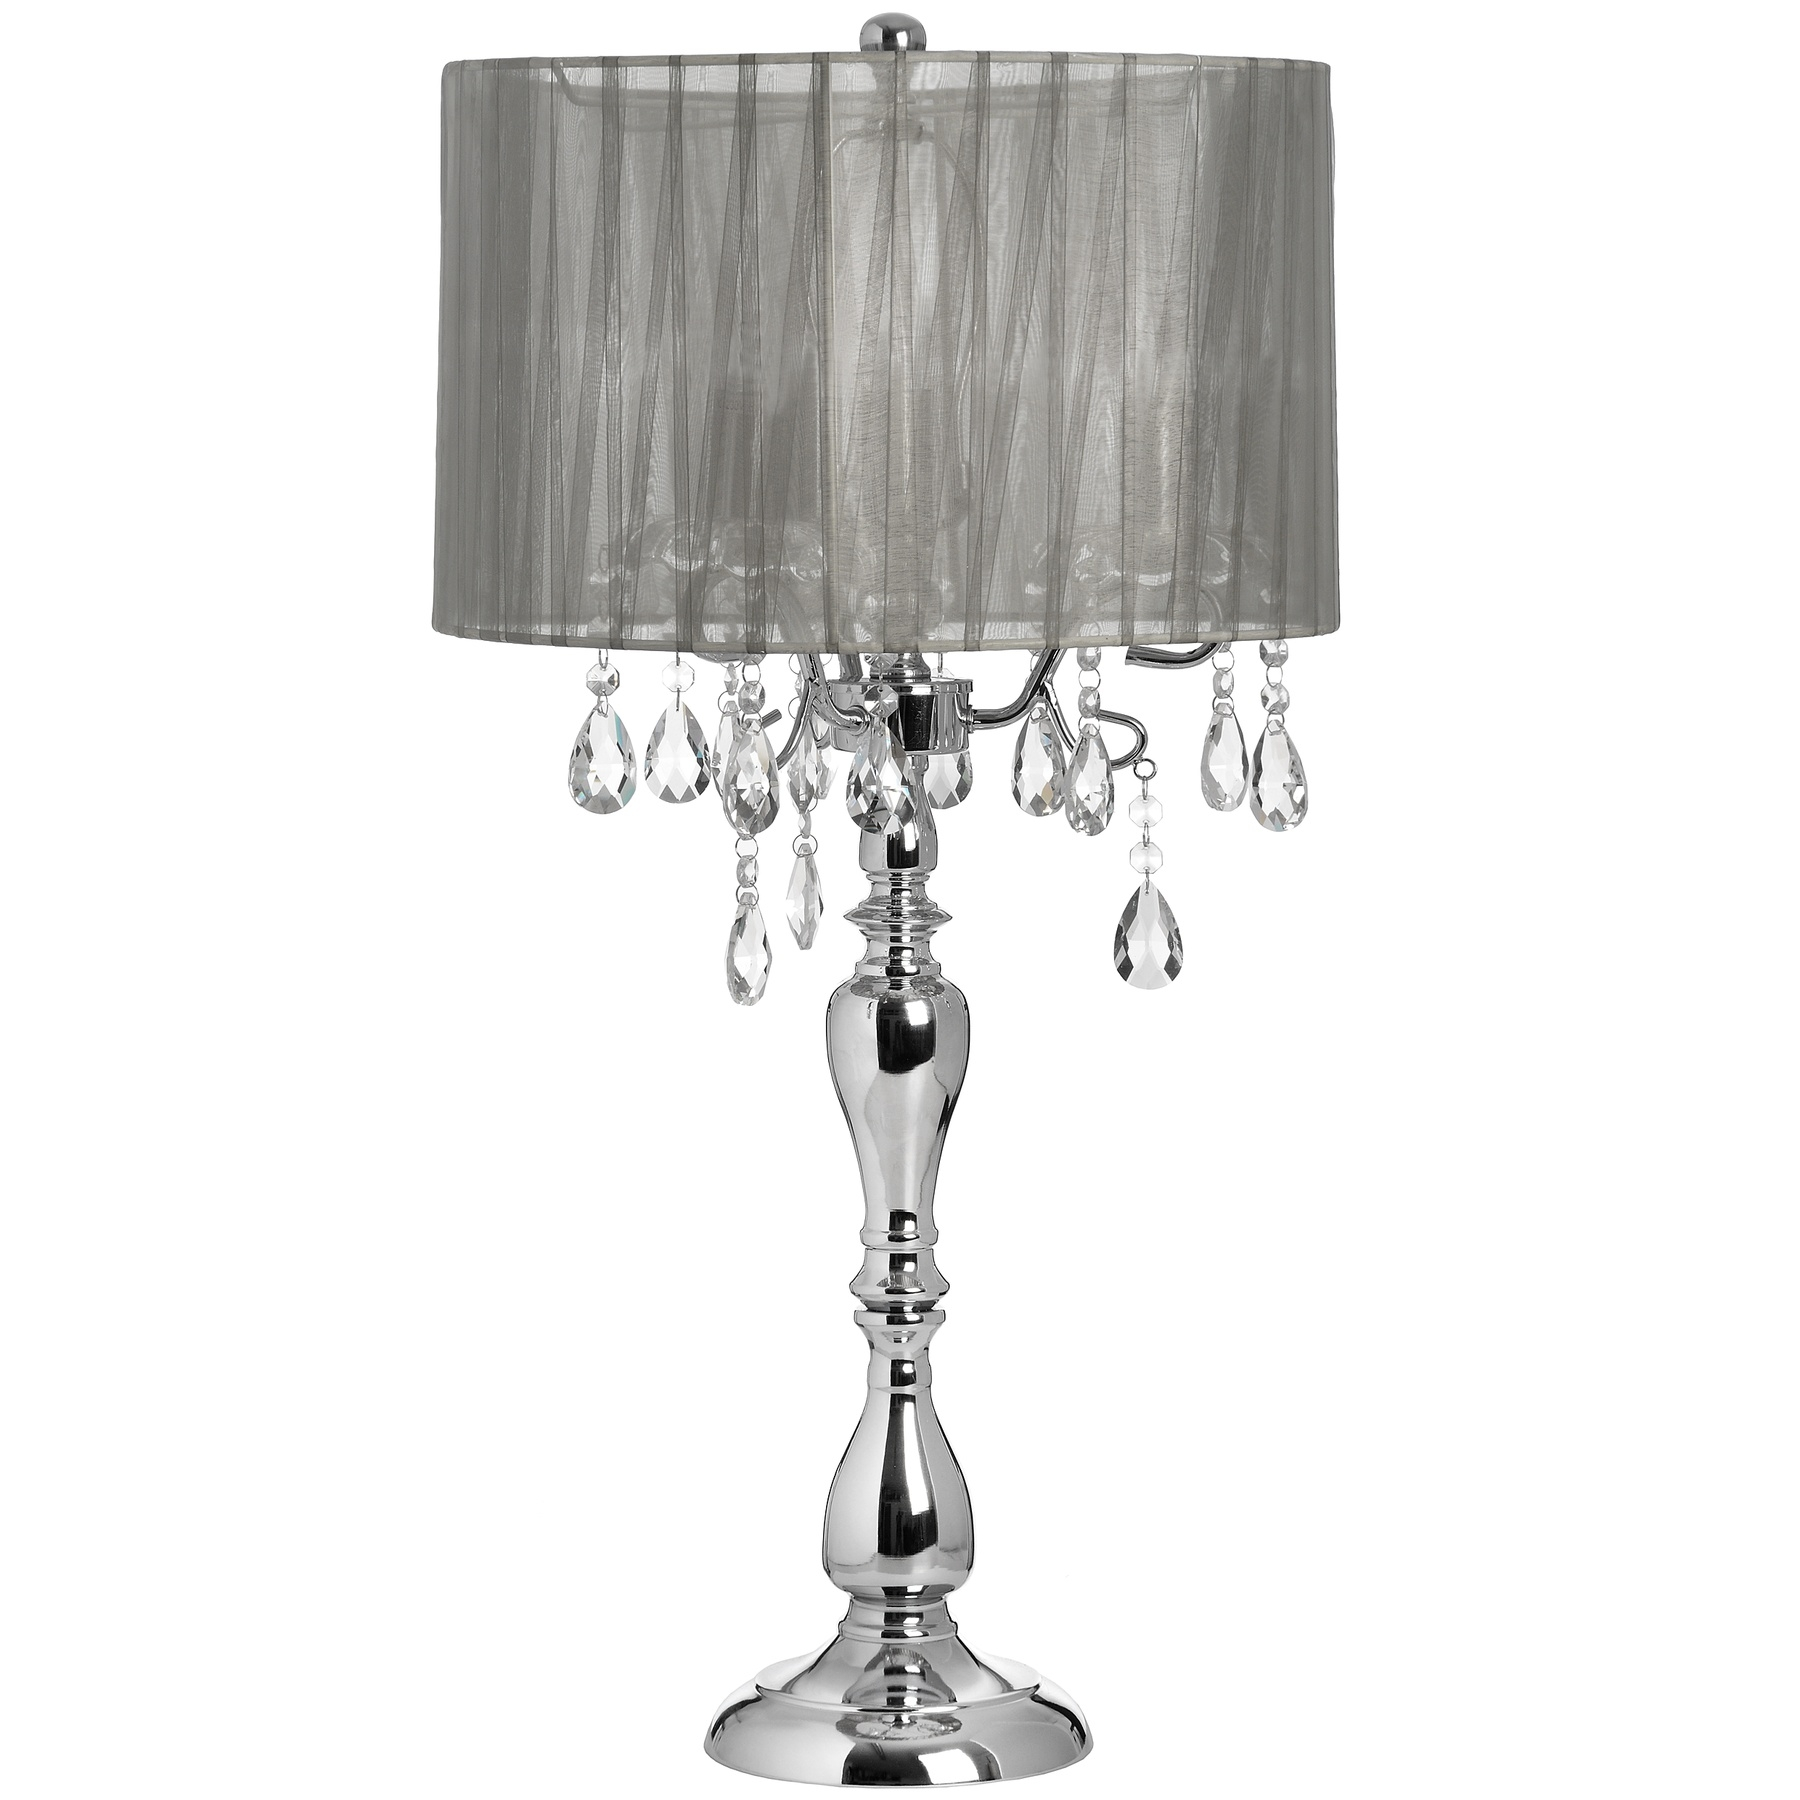 Chandelier Table Lamps: 15 Photos Crystal Table Chandeliers